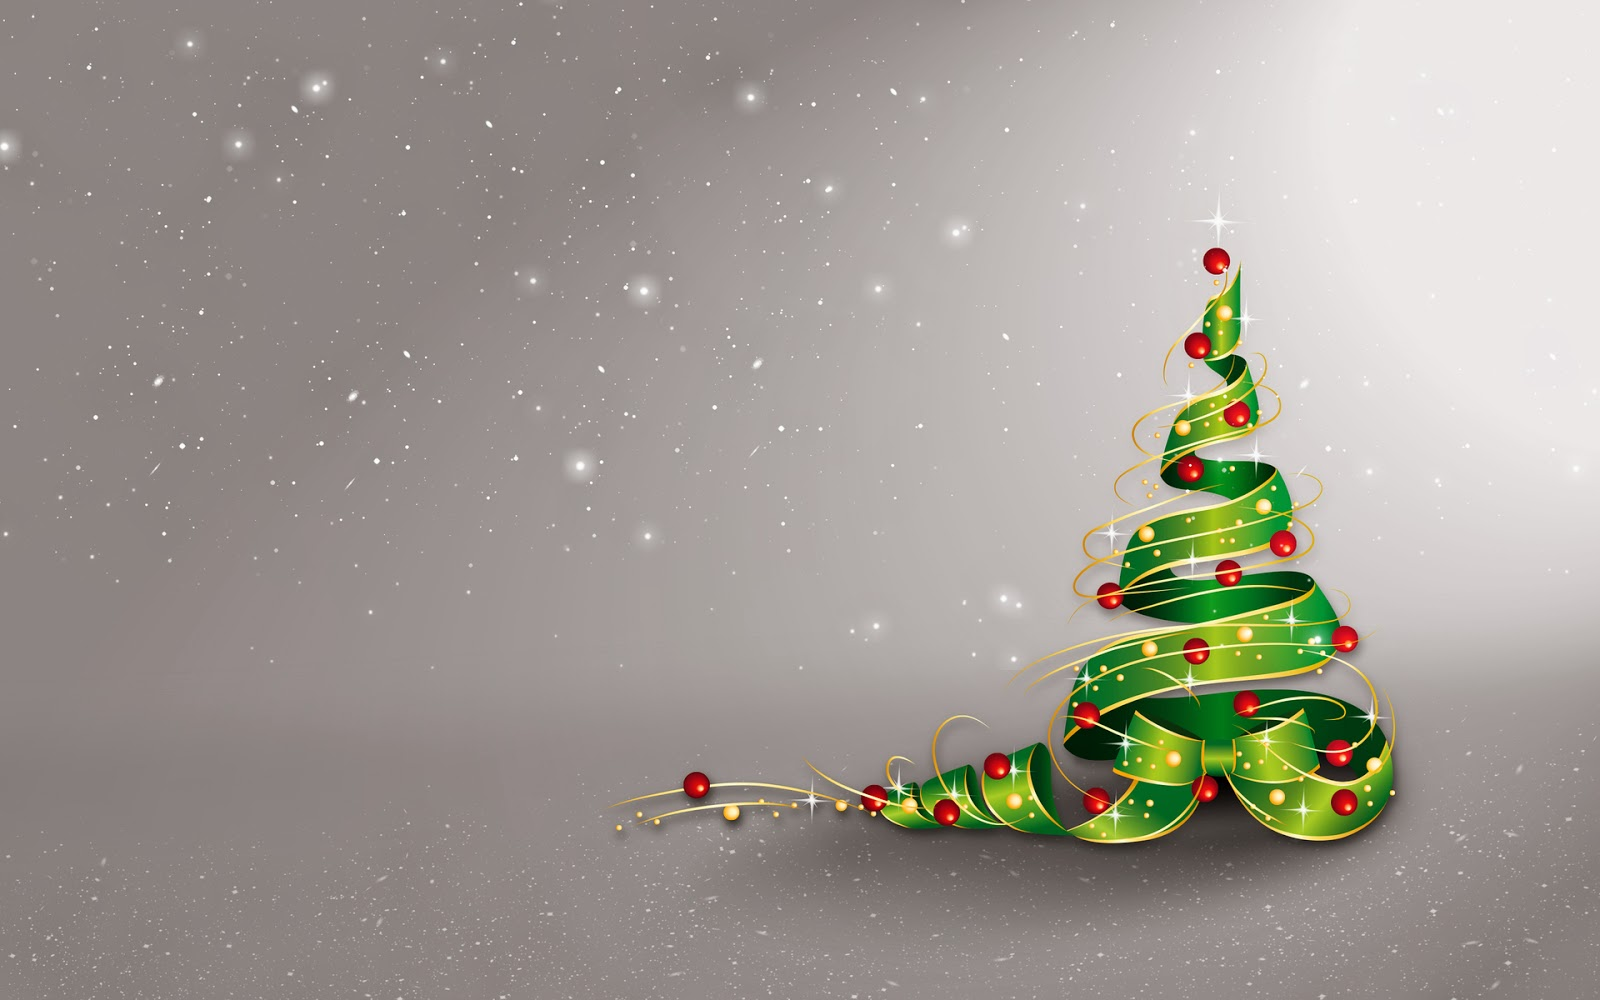 Christmas Santa Hd Wallpapers Christmas Tree Abstract Design Images Pixhome